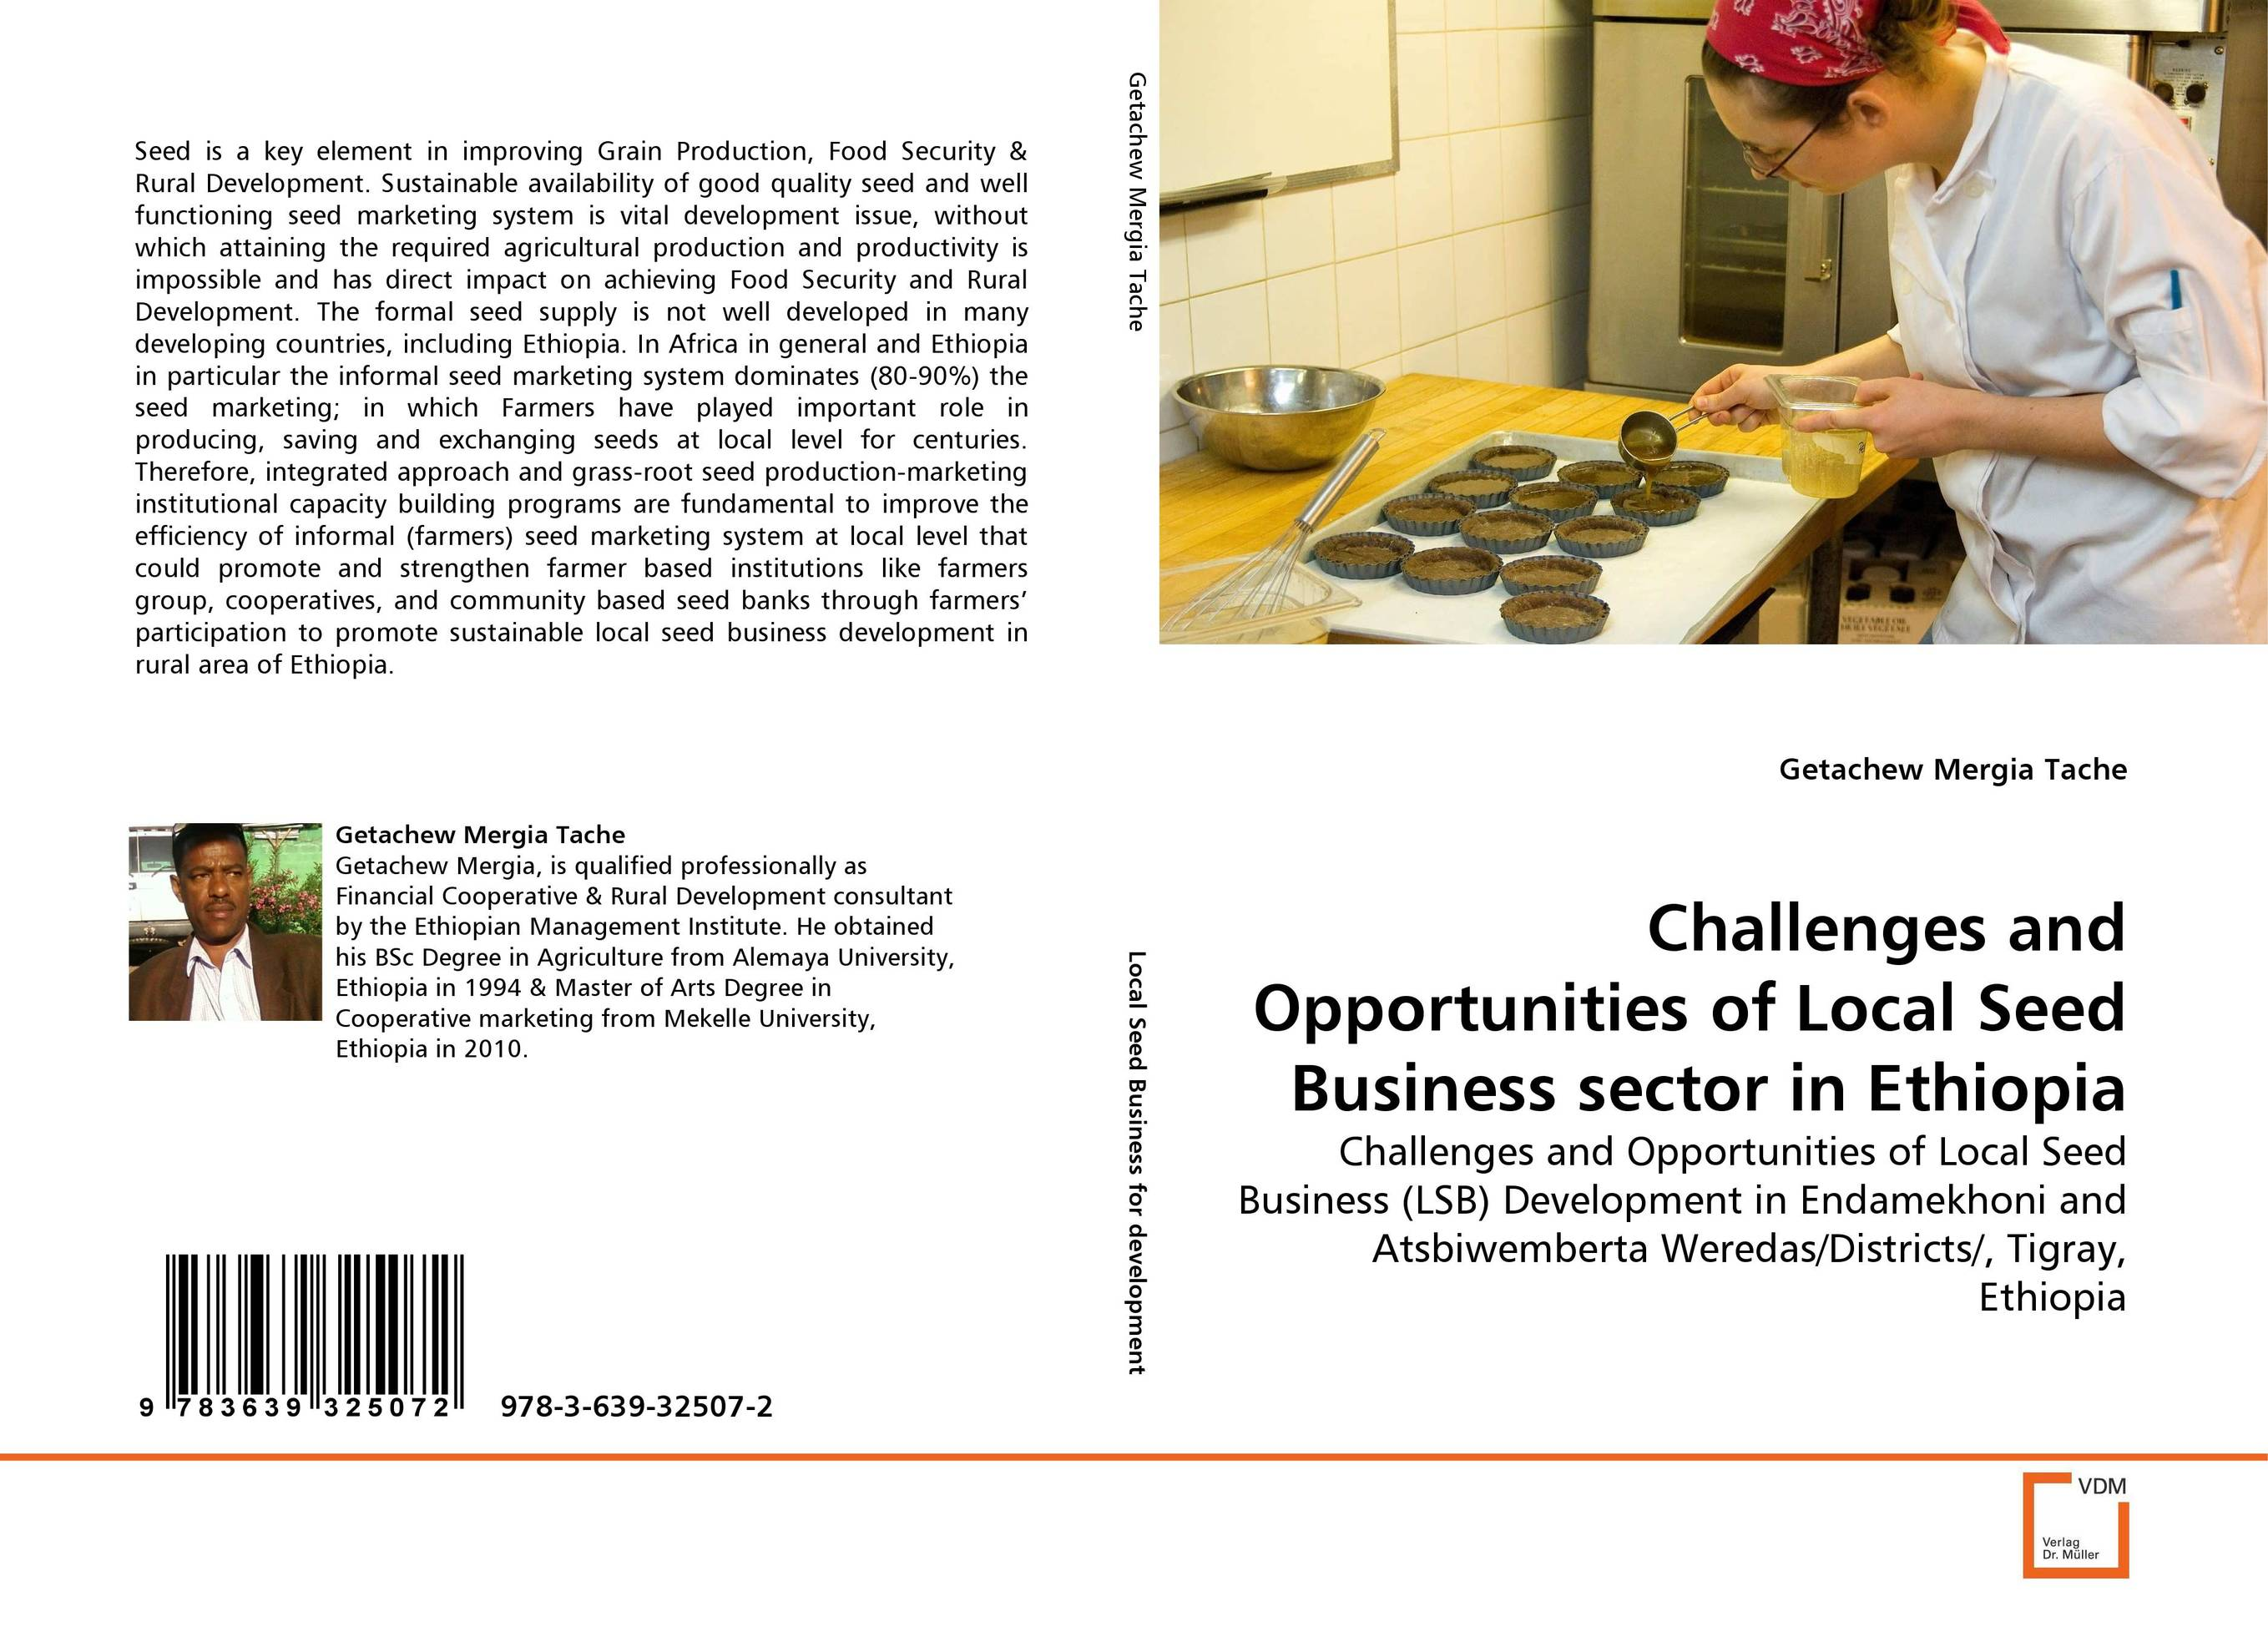 Challenges and Opportunities of Local Seed Business sector in Ethiopia j greer nano and giga challenges in microelectronics